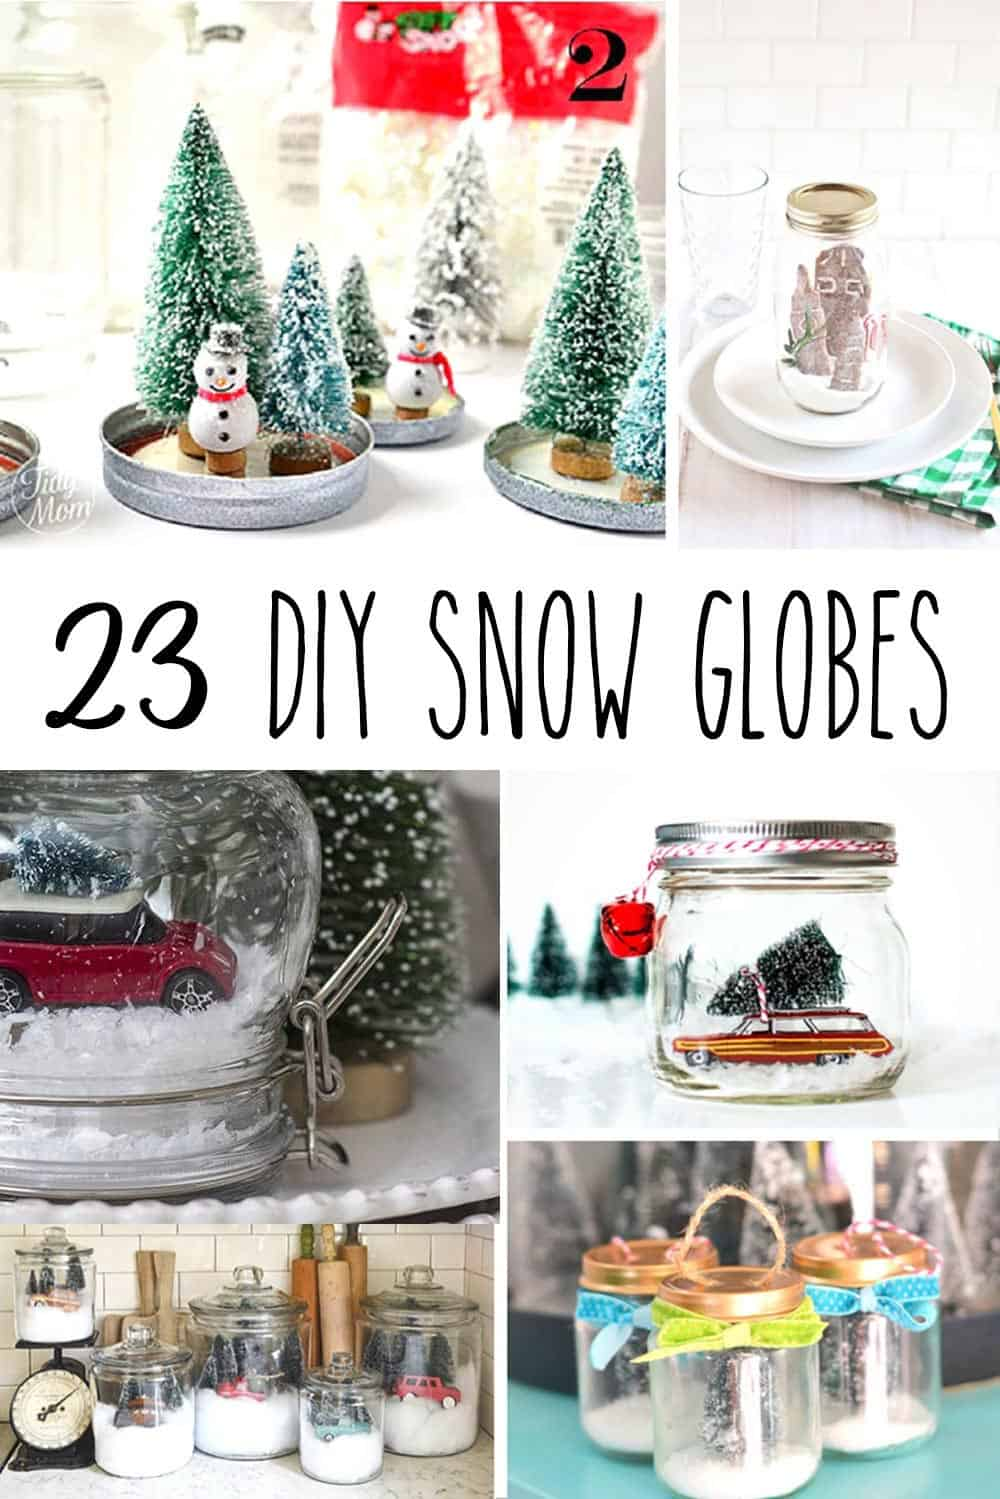 Christmas In Evergreen Snow Globe.23 Diy Snow Globes Make Your Own Mini Winter Wonderland